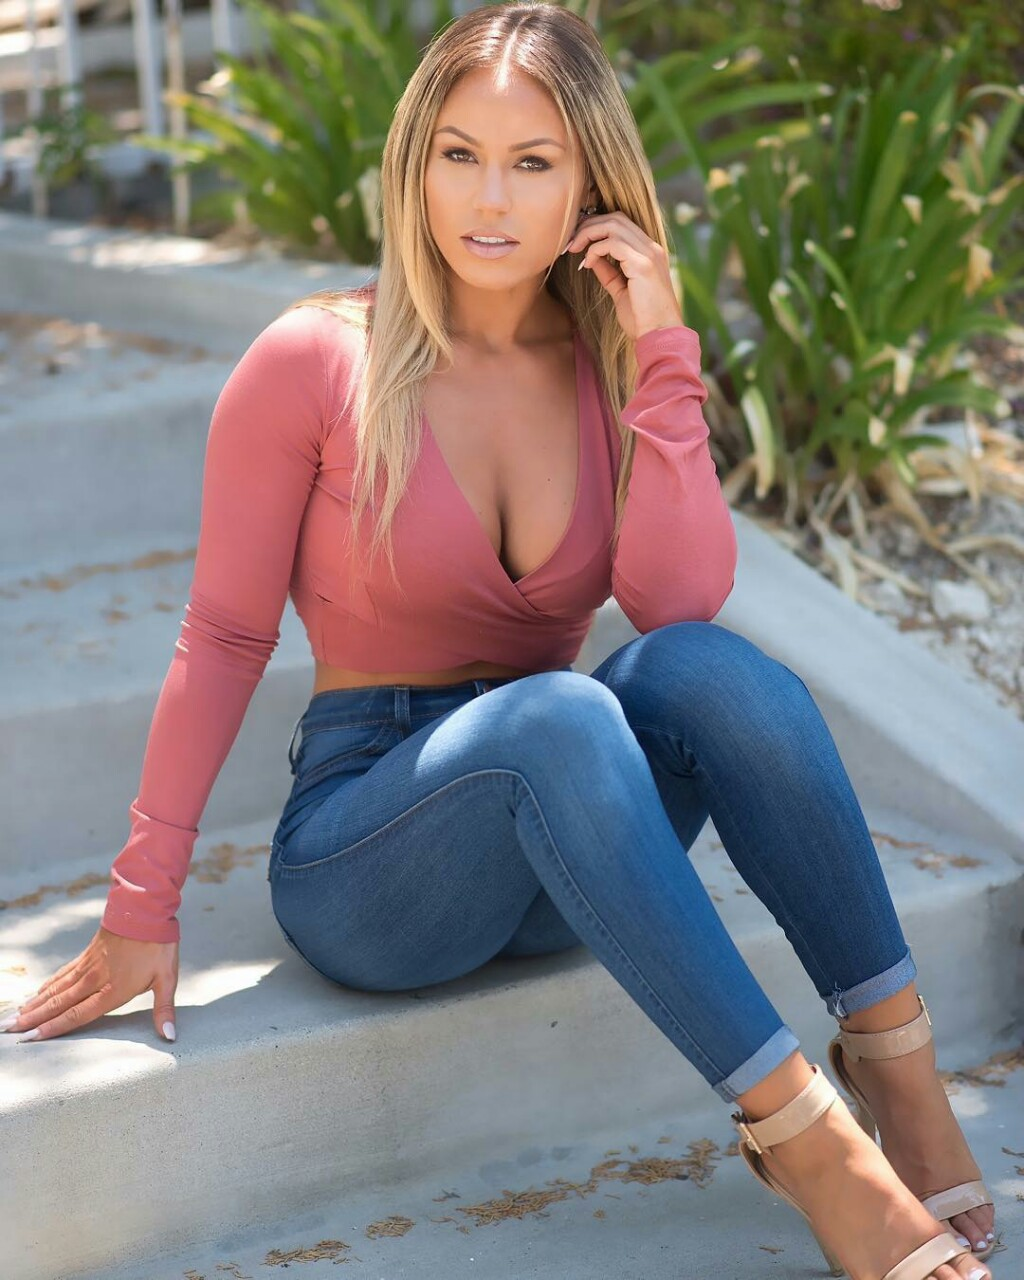 Dating sites over 50 uk 10